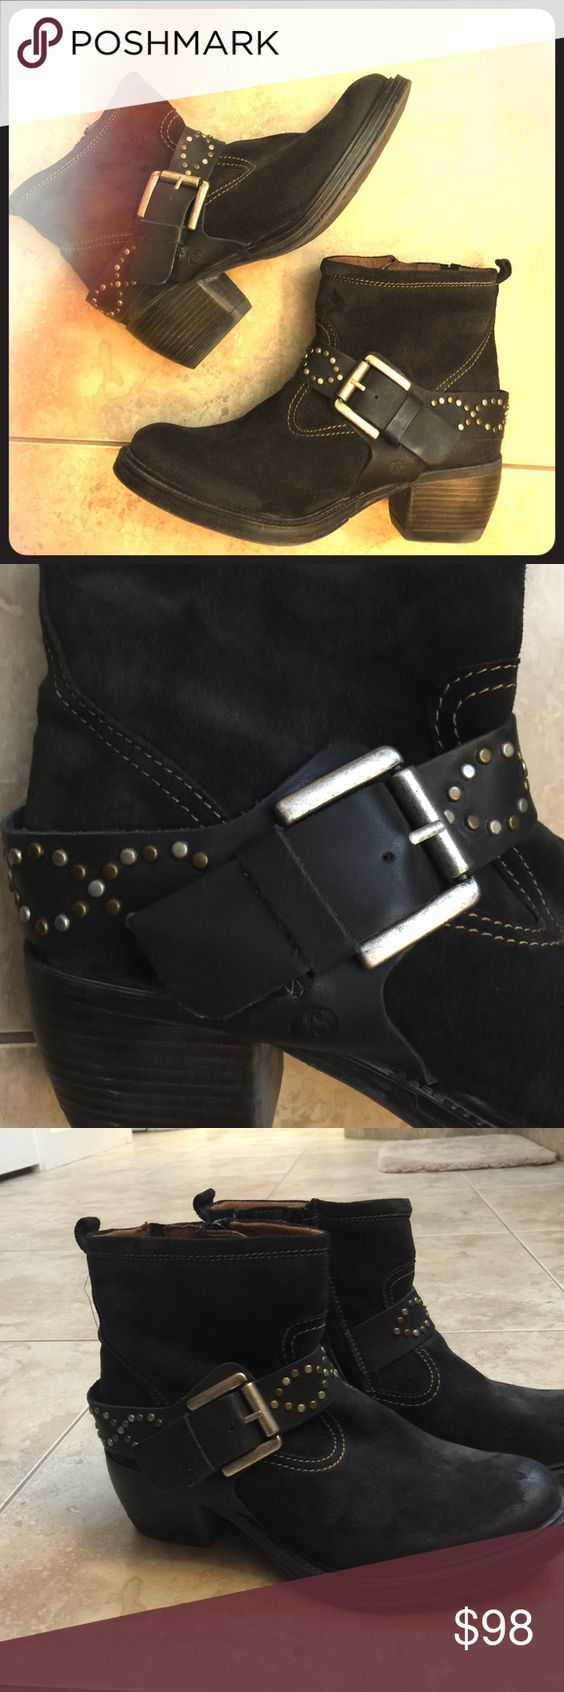 Josef Seibel Suede booties Gorgeous and soft suede booties with cool studded detail. Brand new never worn! Josef Seibel Shoes Ankle Boots & Booties